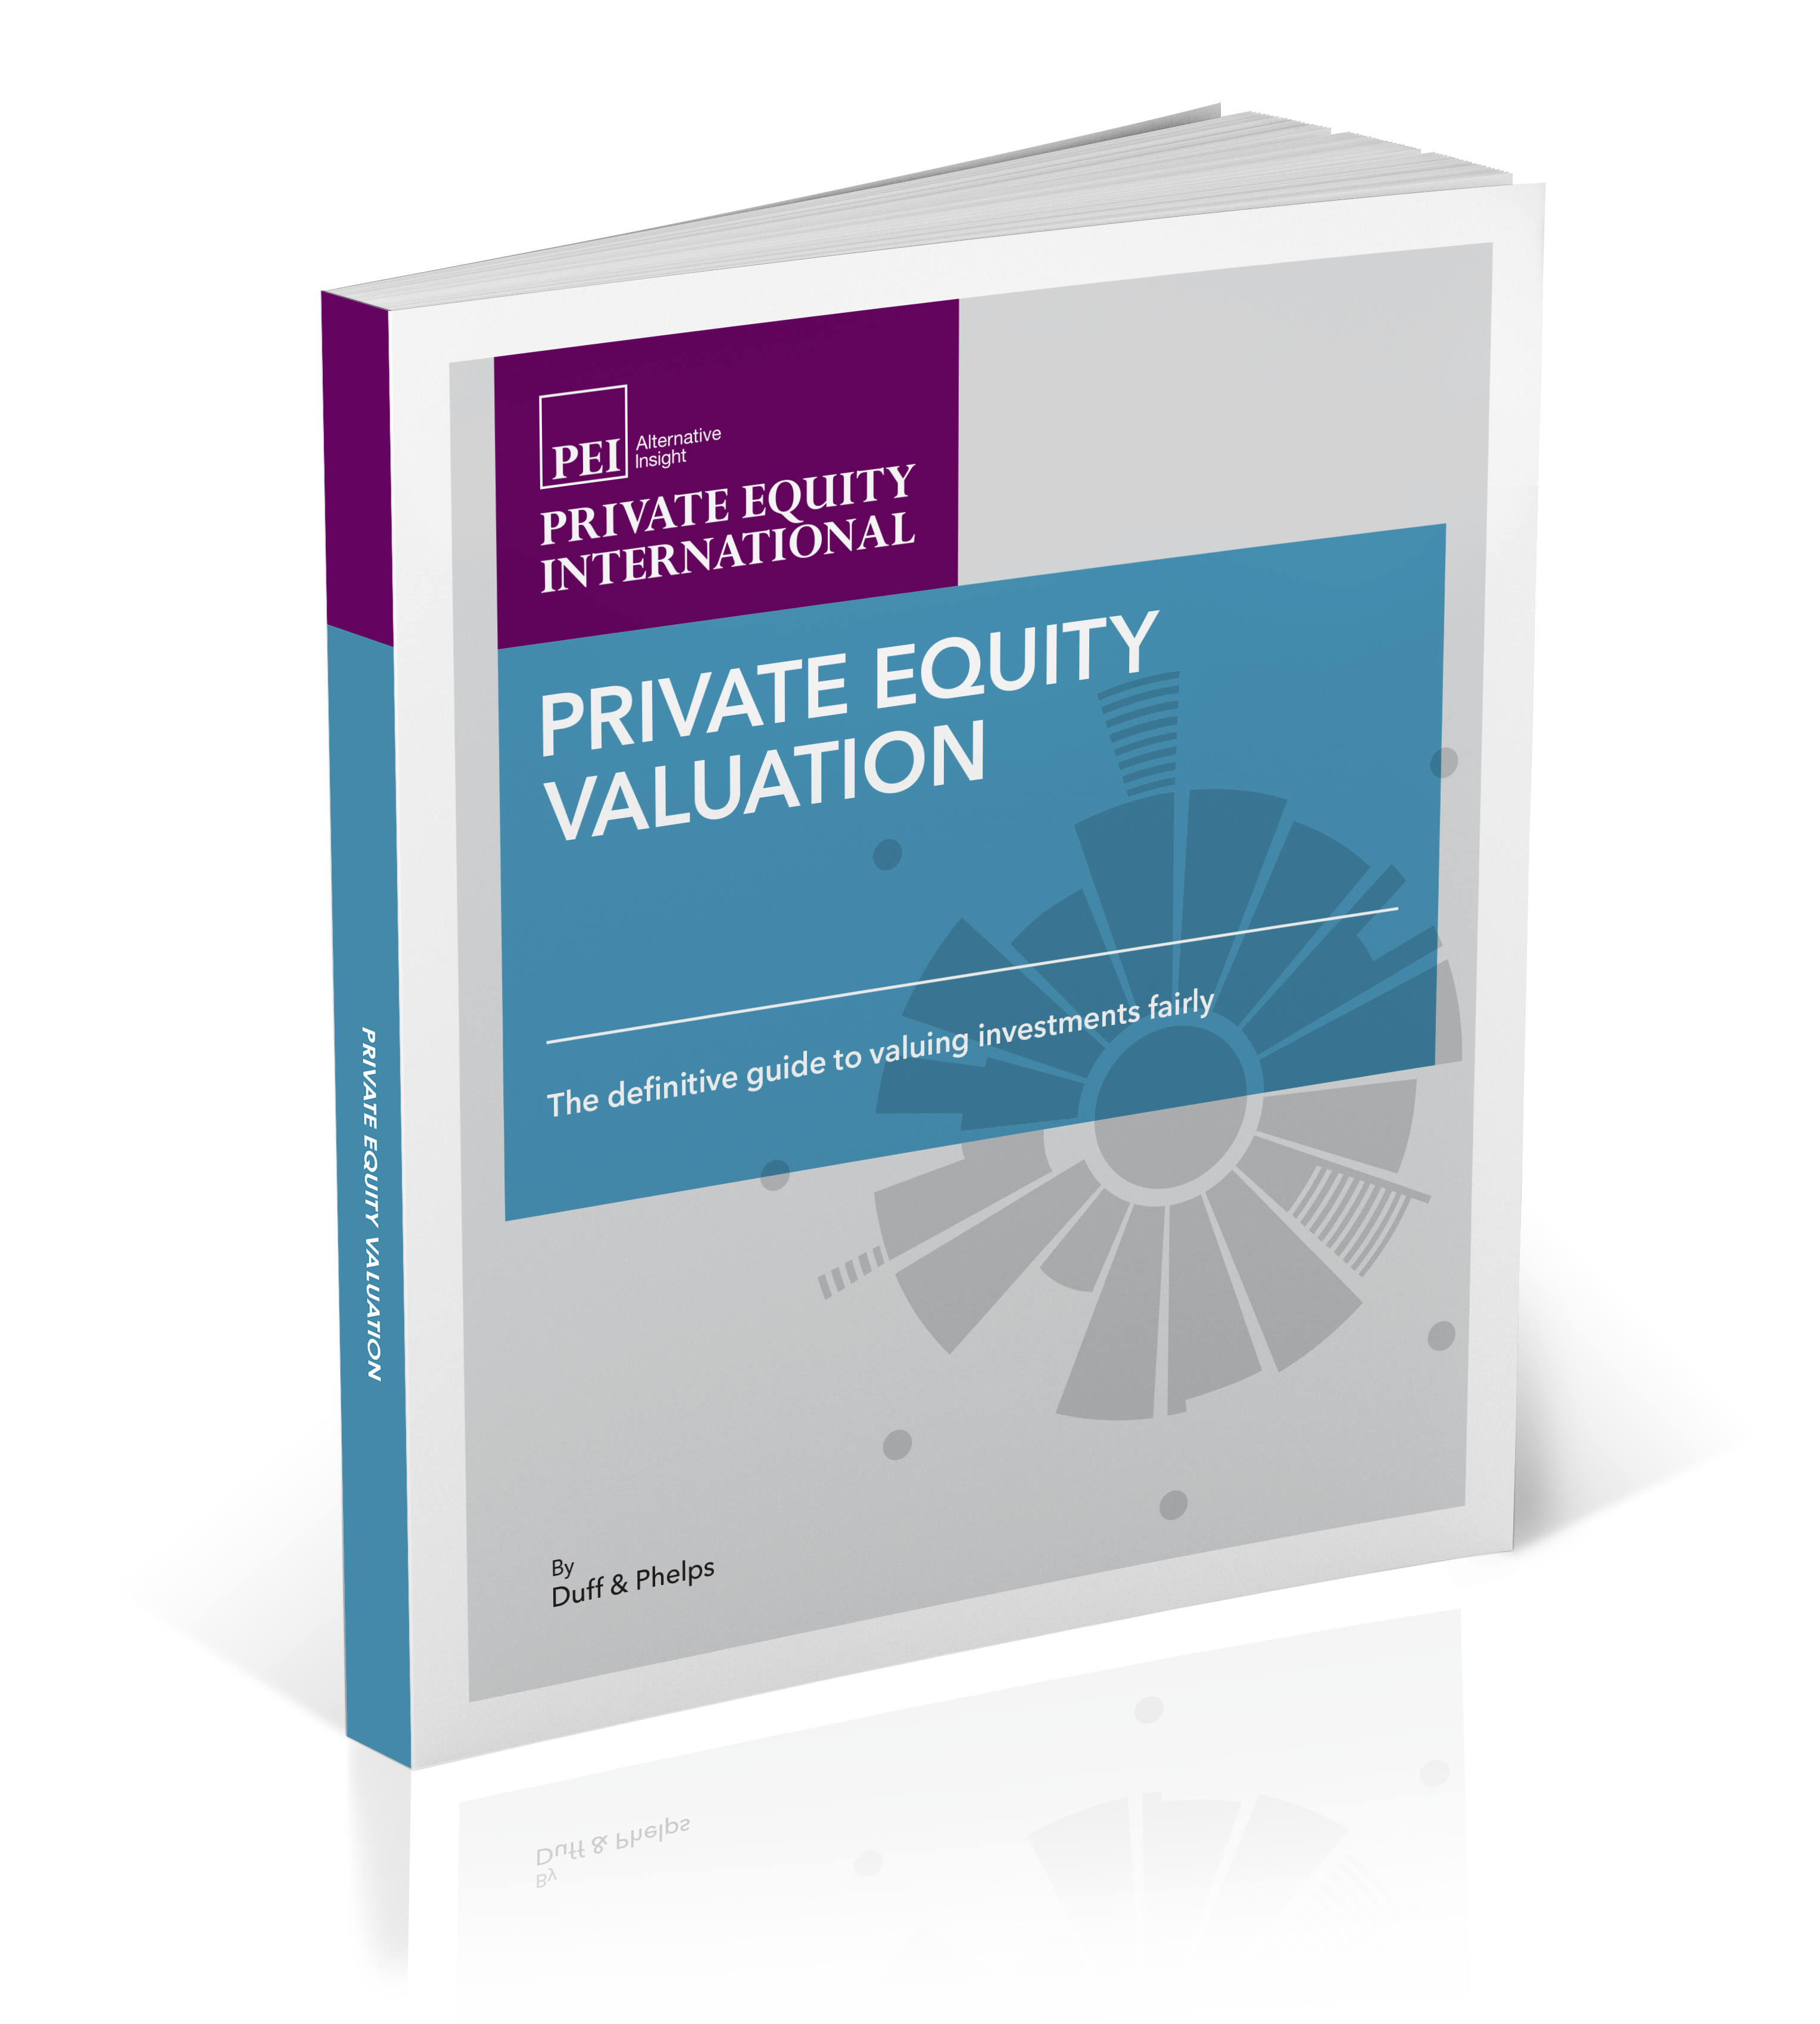 Private Equity Valuation - Private Equity International